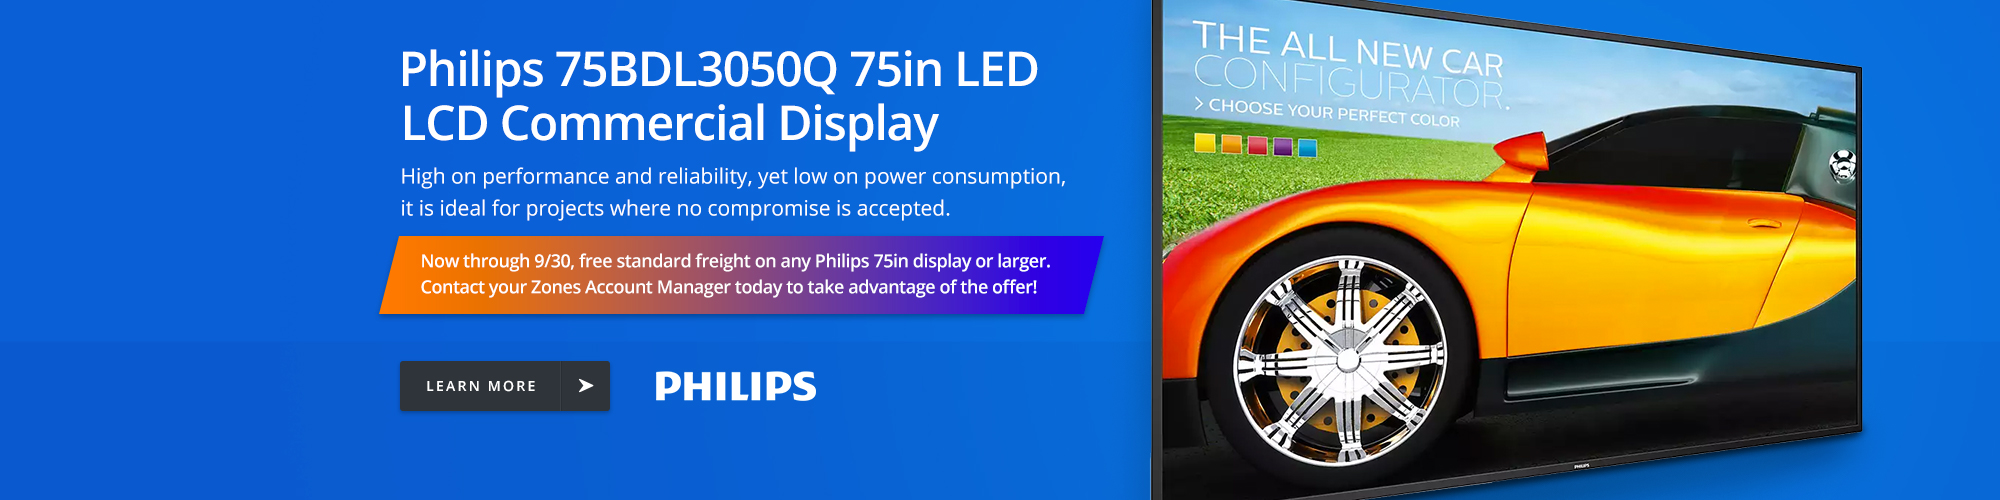 Philips 75BDL3050Q 75in LED LCD Commercial Display